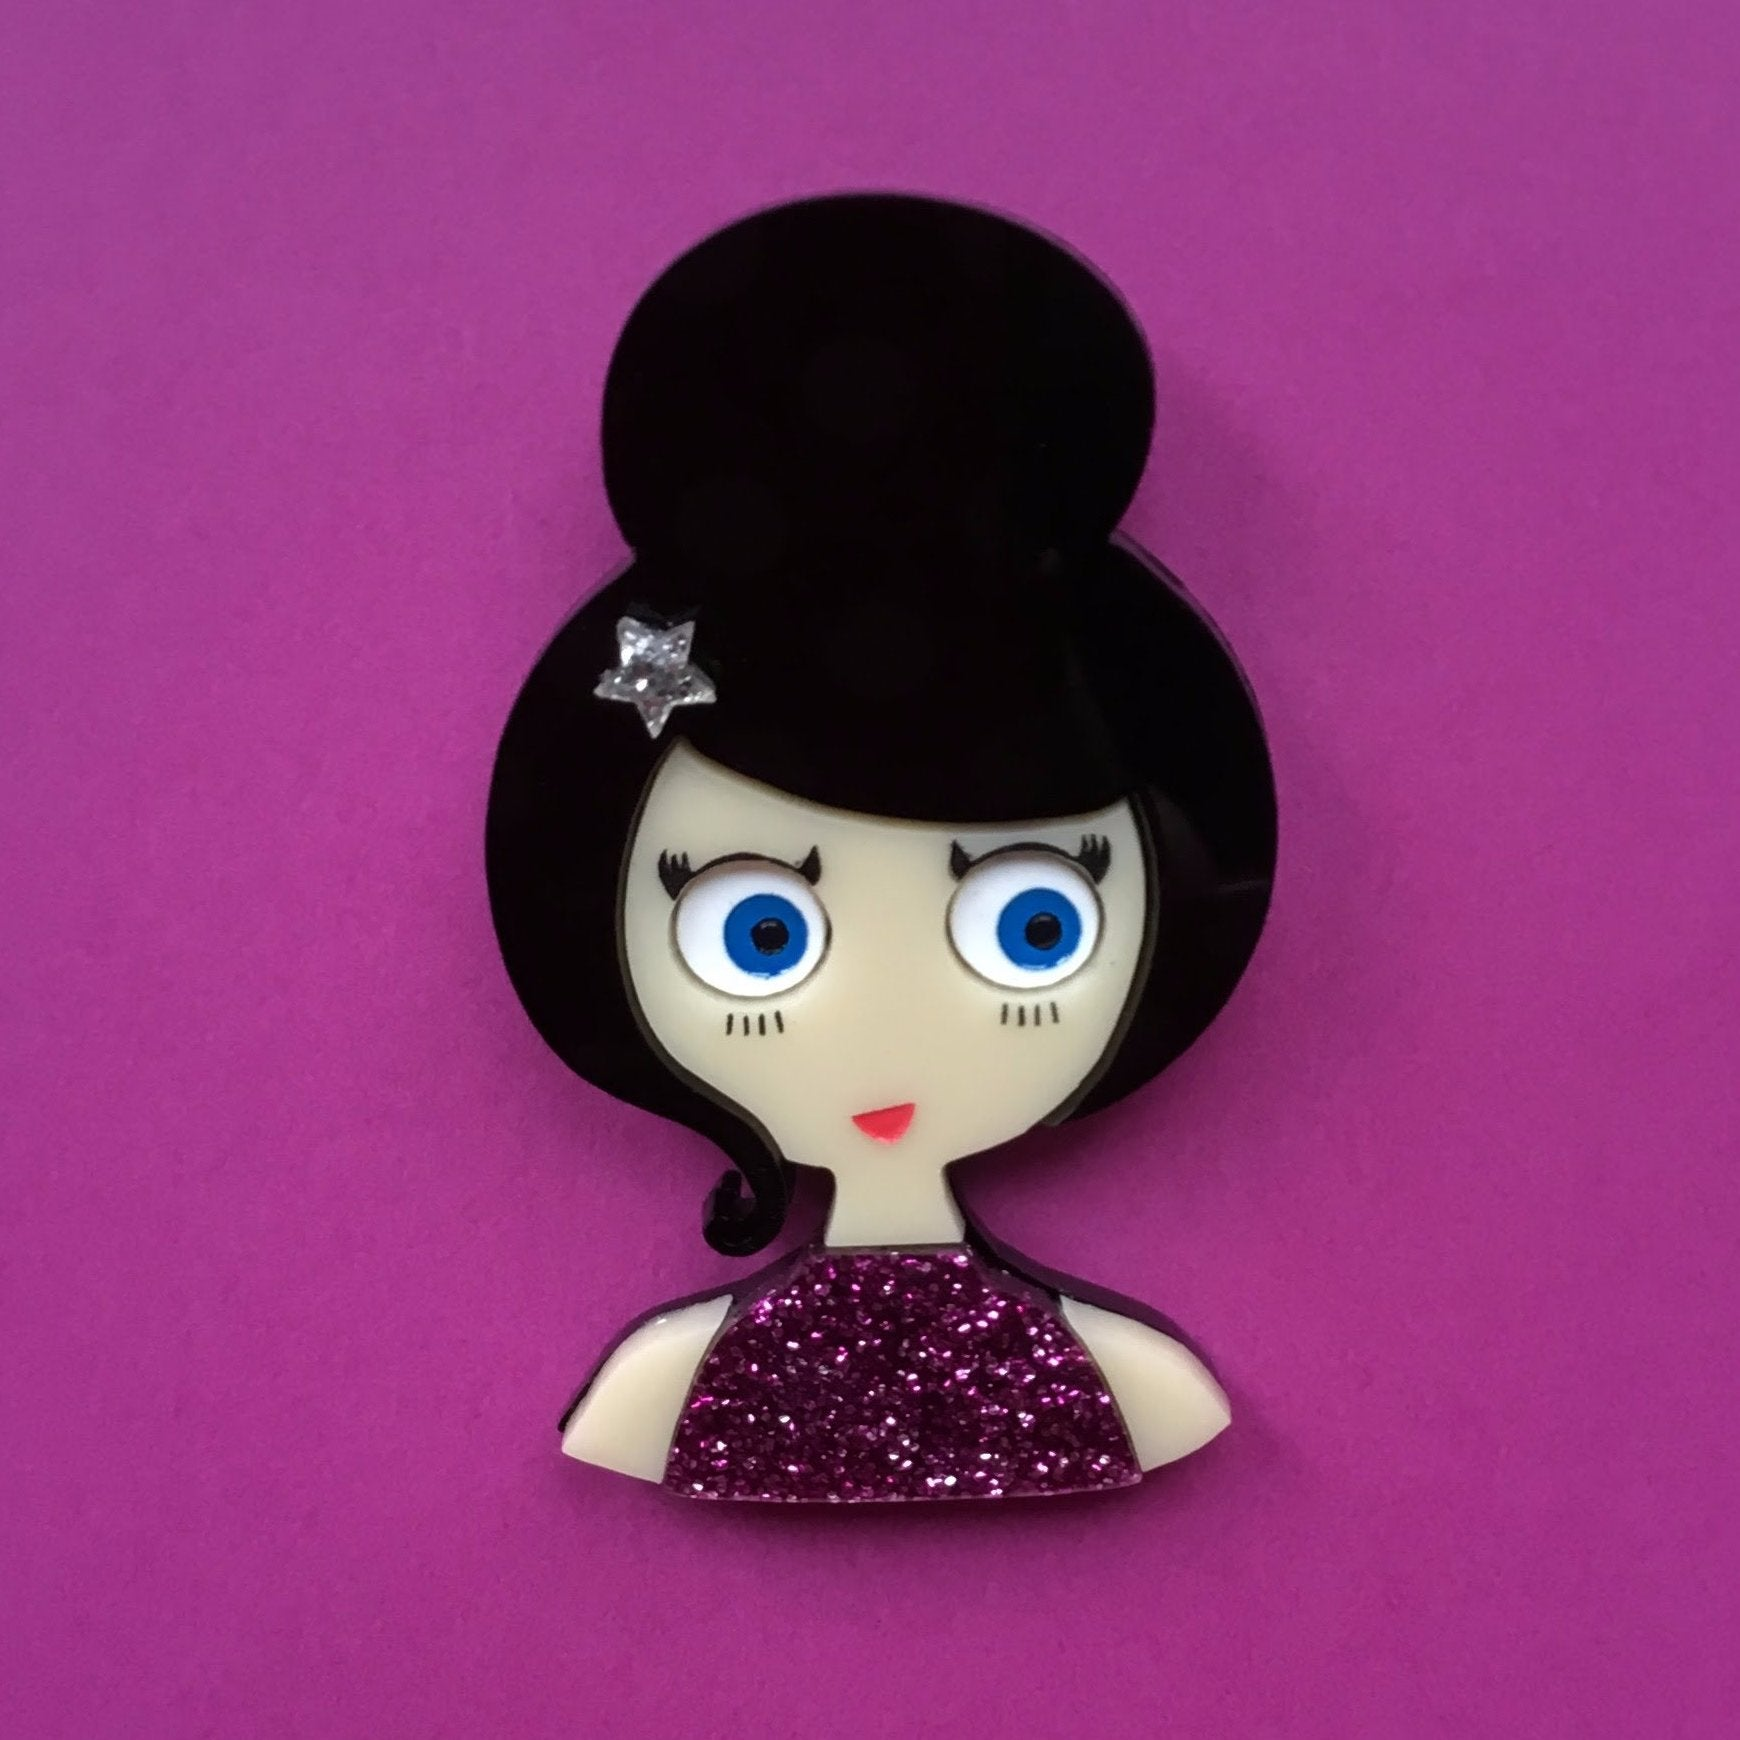 SOFIA Acrylic Brooch, pink glitter dress and silver star hair clip - Isa Duval